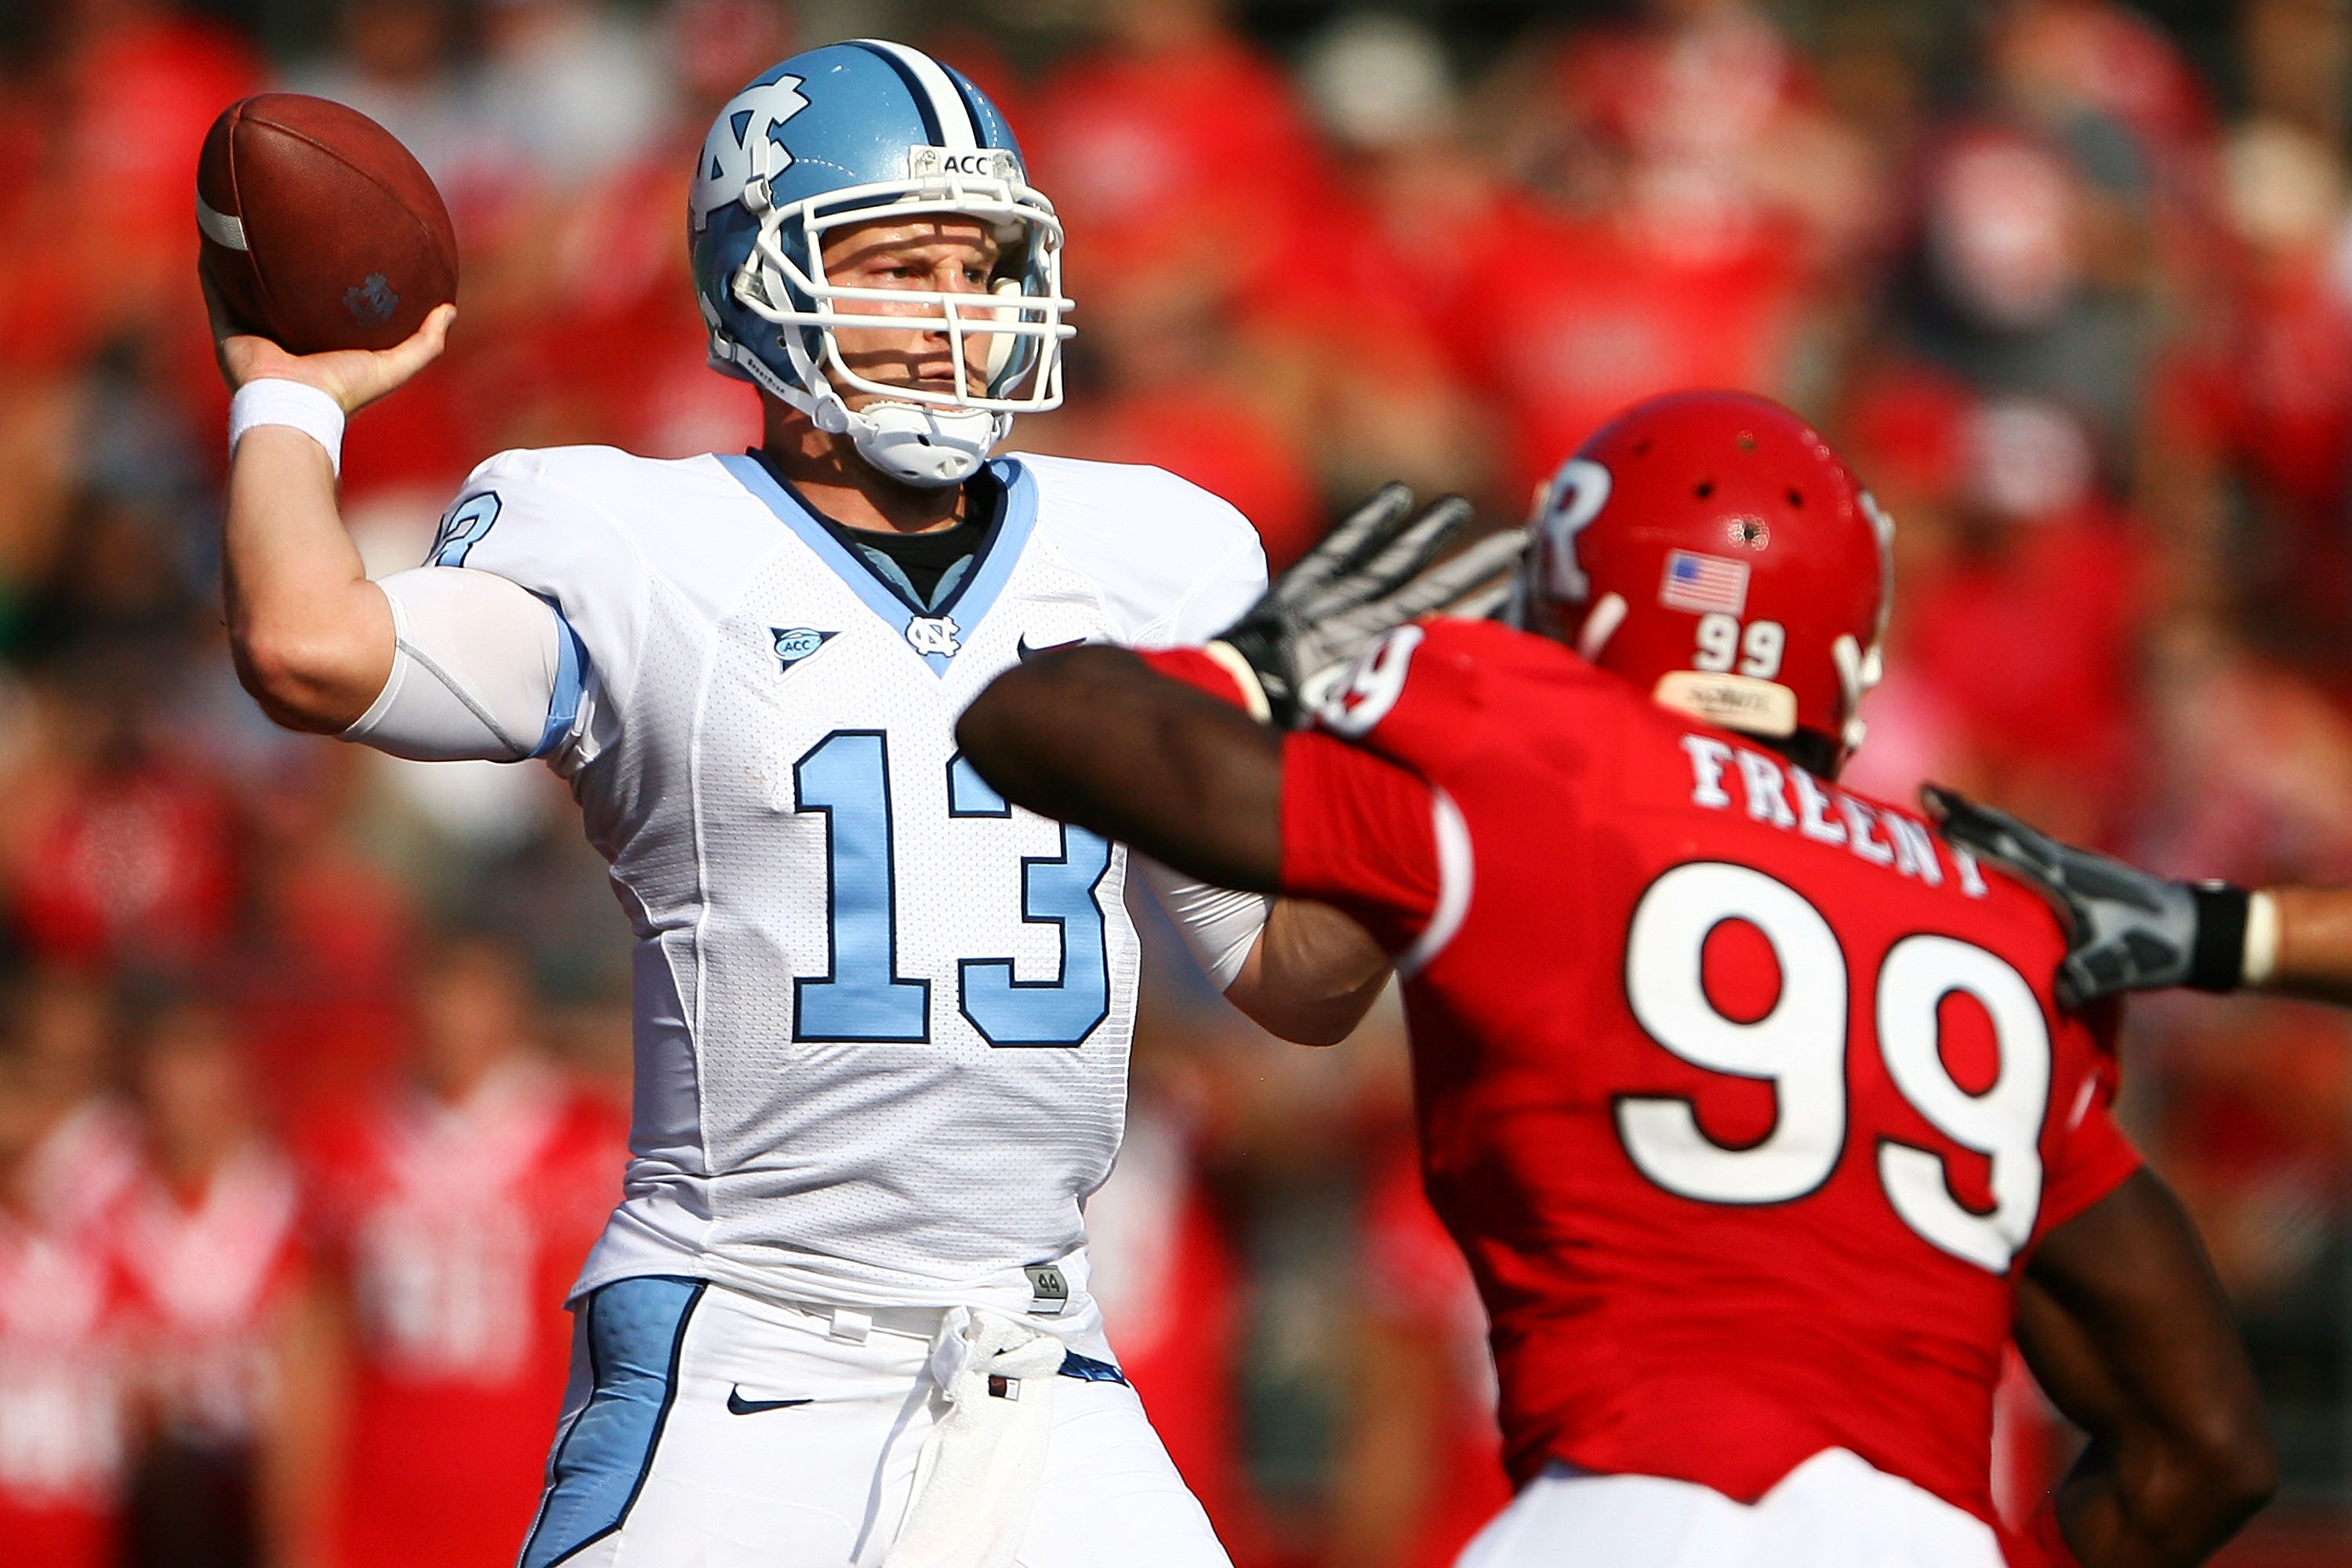 NEW BRUNSWICK, NJ - SEPTEMBER 25: Jonathan Freeny #99 of the Rutgers Scarlet Knights attempts to block a pass from  T.J. Yates #13 of the North Carolina Tar Heels during a game at Rutgers Stadium on September 25, 2010 in New Brunswick, New Jersey.  (Photo